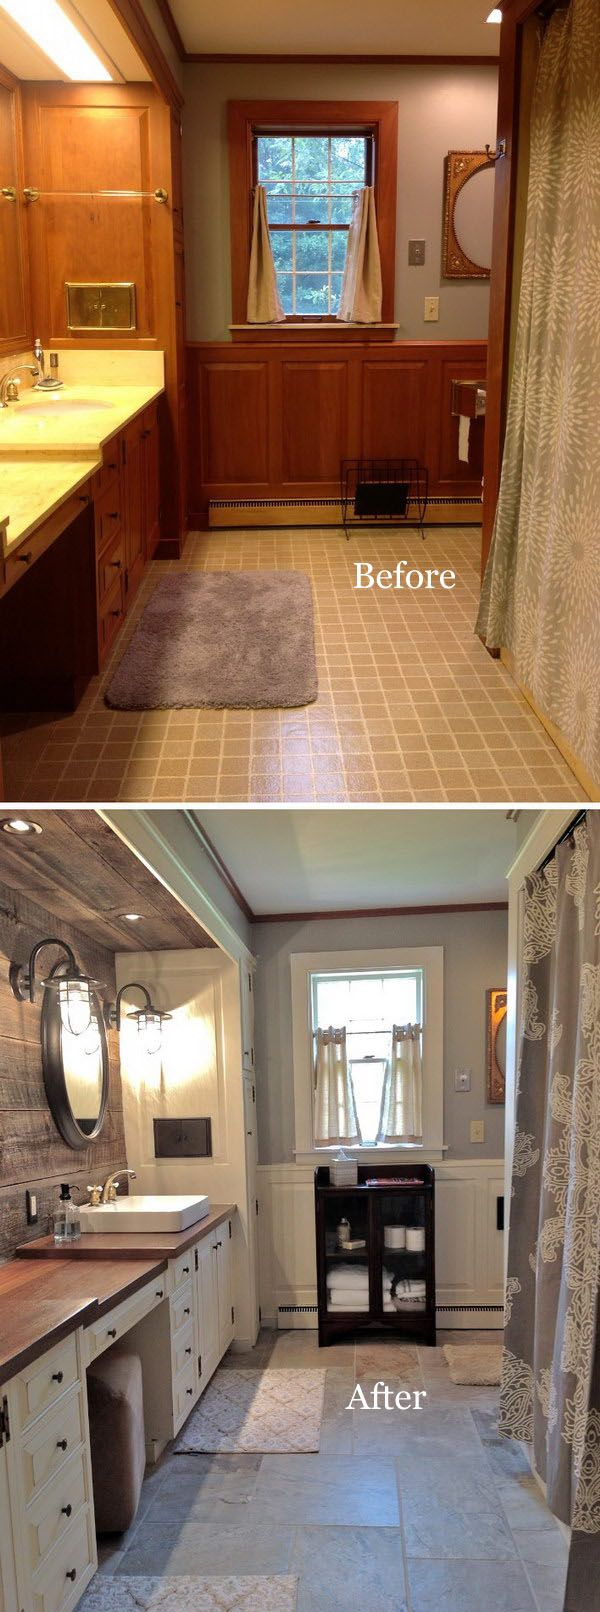 Cheap bathroom remodel before and after - Before And After 31 Amazing Bathroom Makeovers